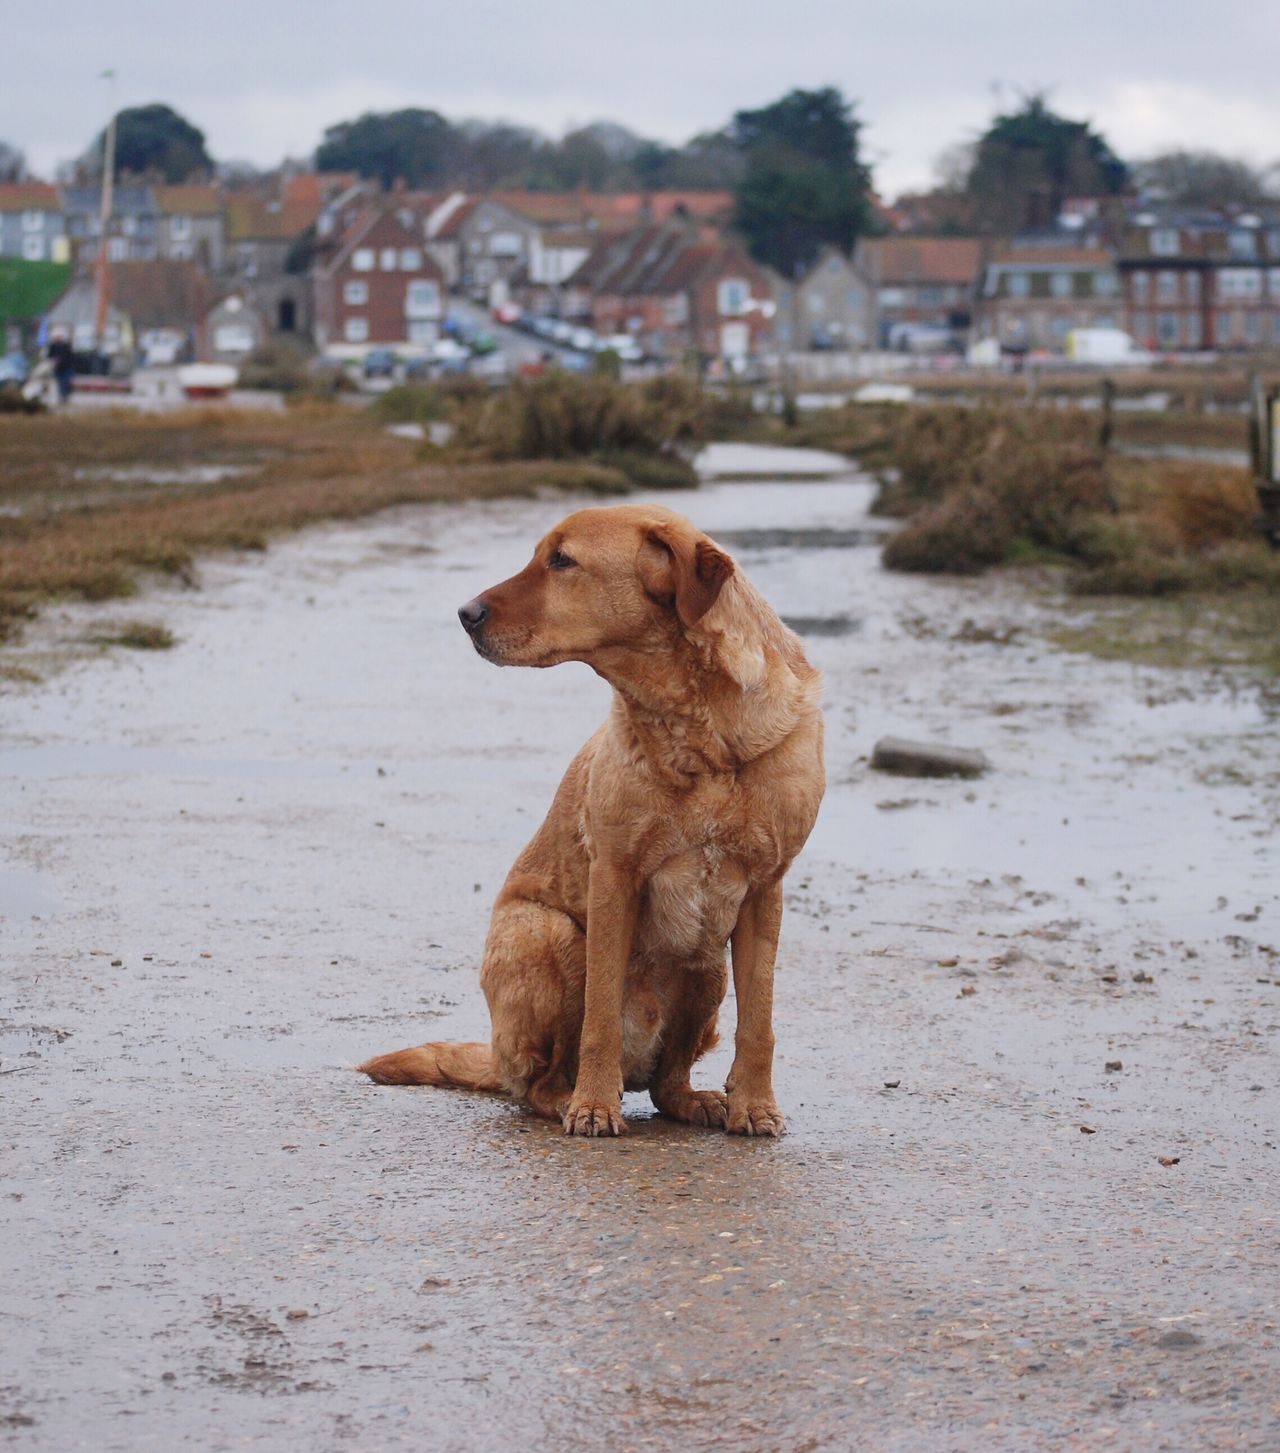 Bonzo @bonzosworld instagram Dog Animal Themes Pets Focus On Foreground Domestic Animals One Animal Red Lab Red Fox Lab Labrador Retriever Labrador Marsh Outdoors Day No People